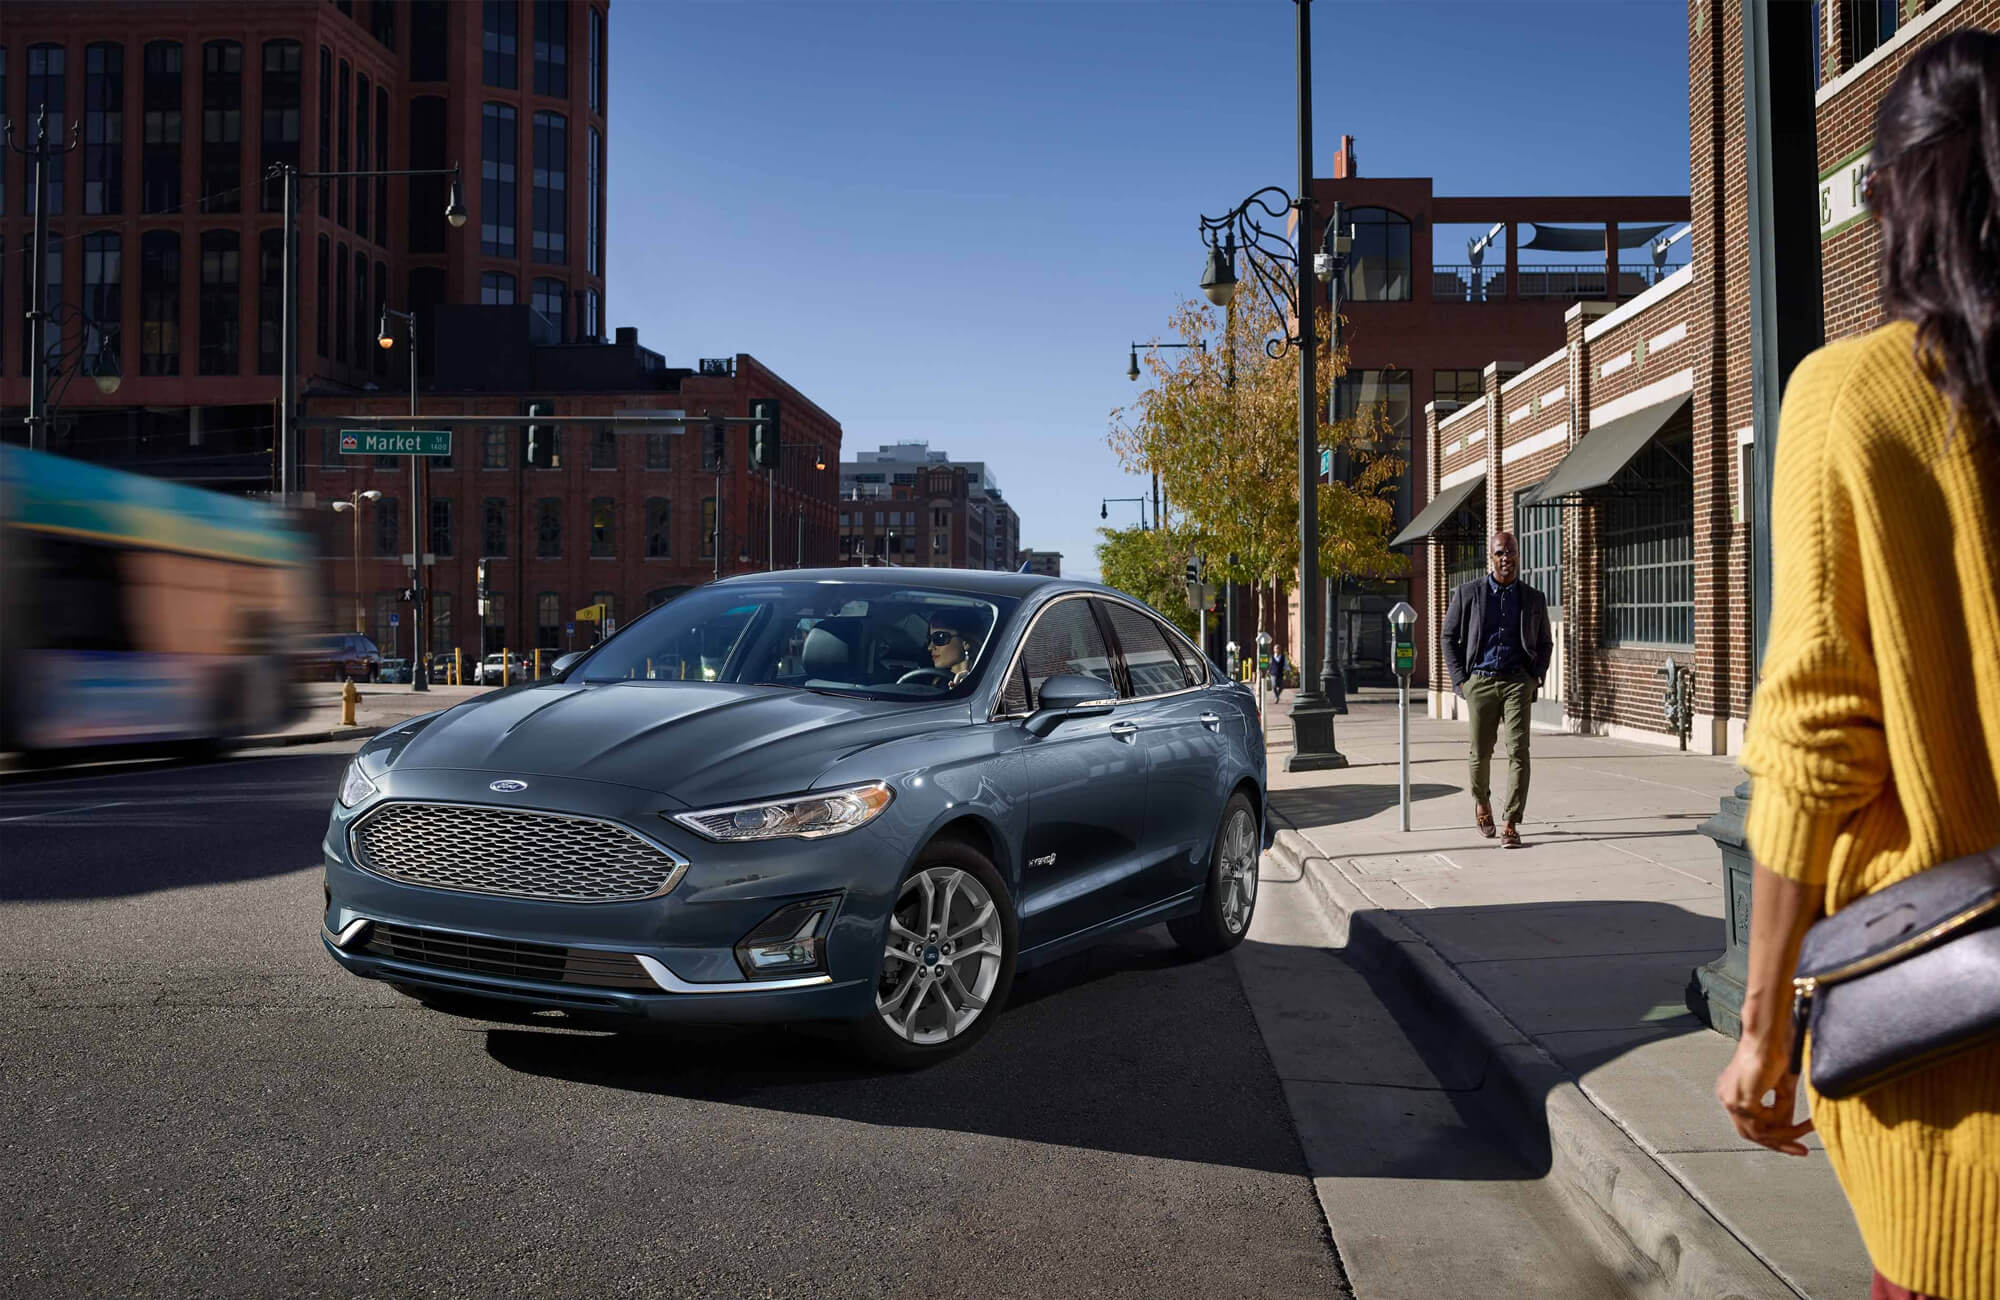 2019-ford-fusion-exterior_1